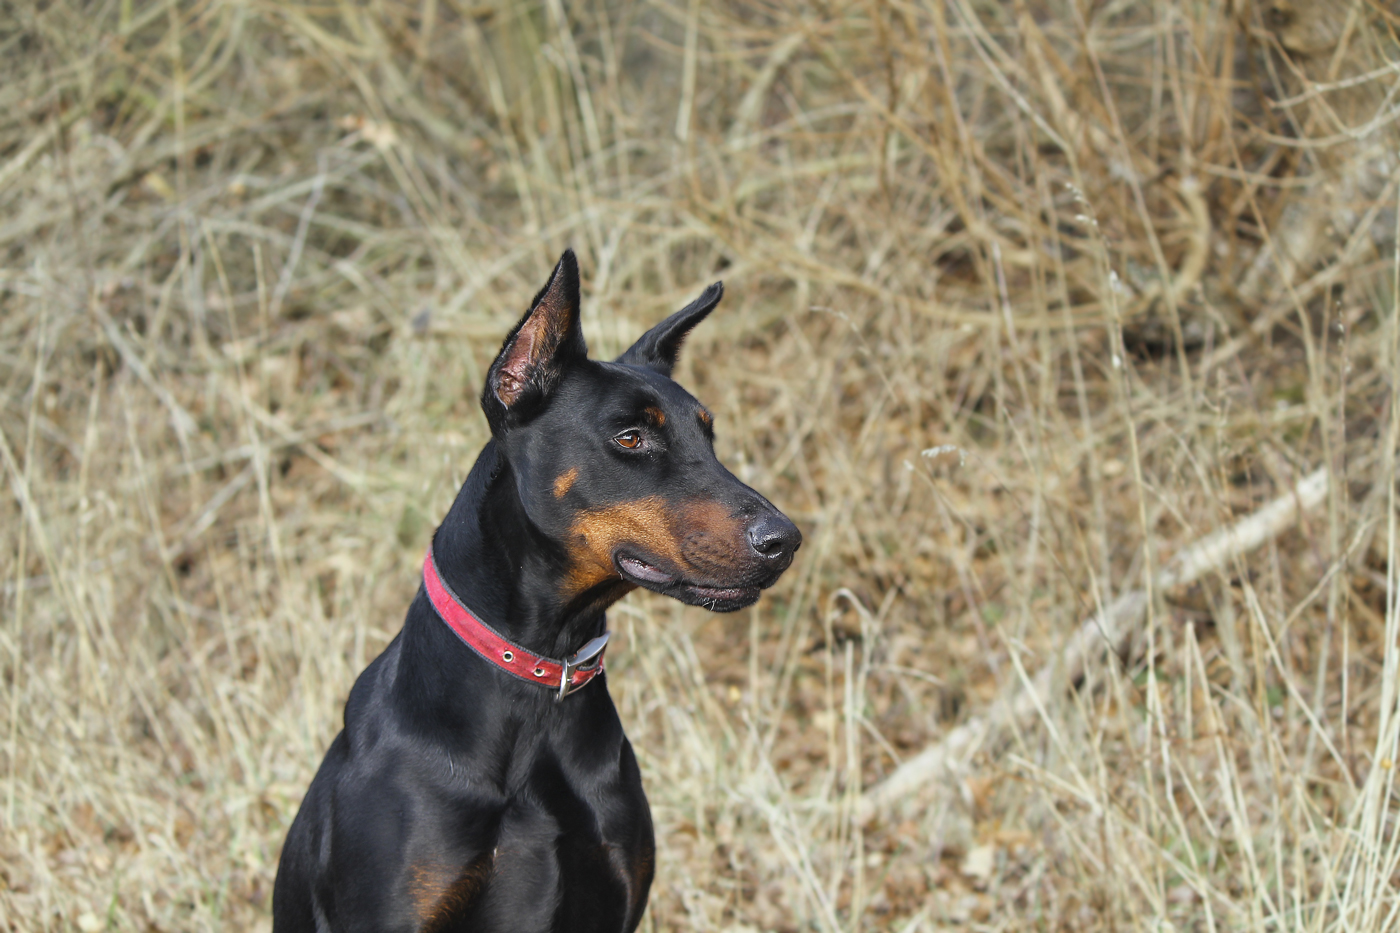 A Doberman Pinscher out for a walk with long grass behind